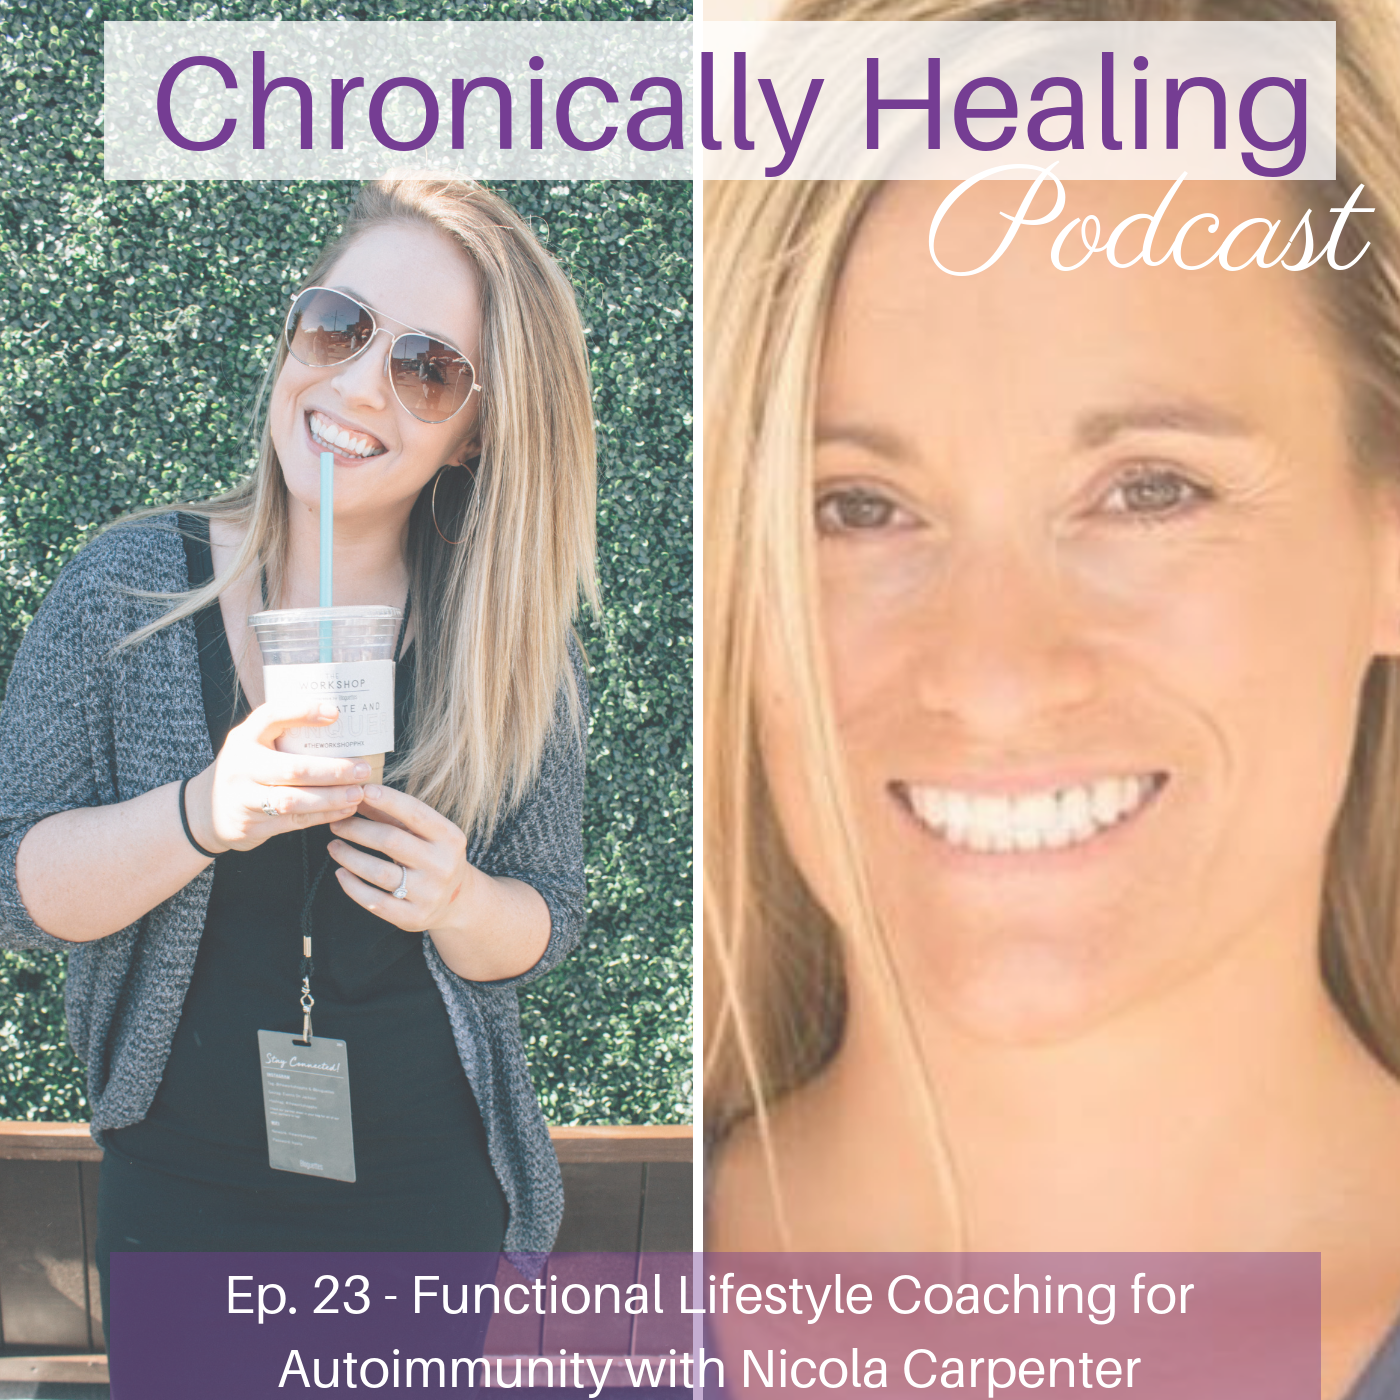 Chronically Healing Podcast Ep. 23 – Functional Lifestyle Coaching for Autoimmunity with Nicola Carpenter